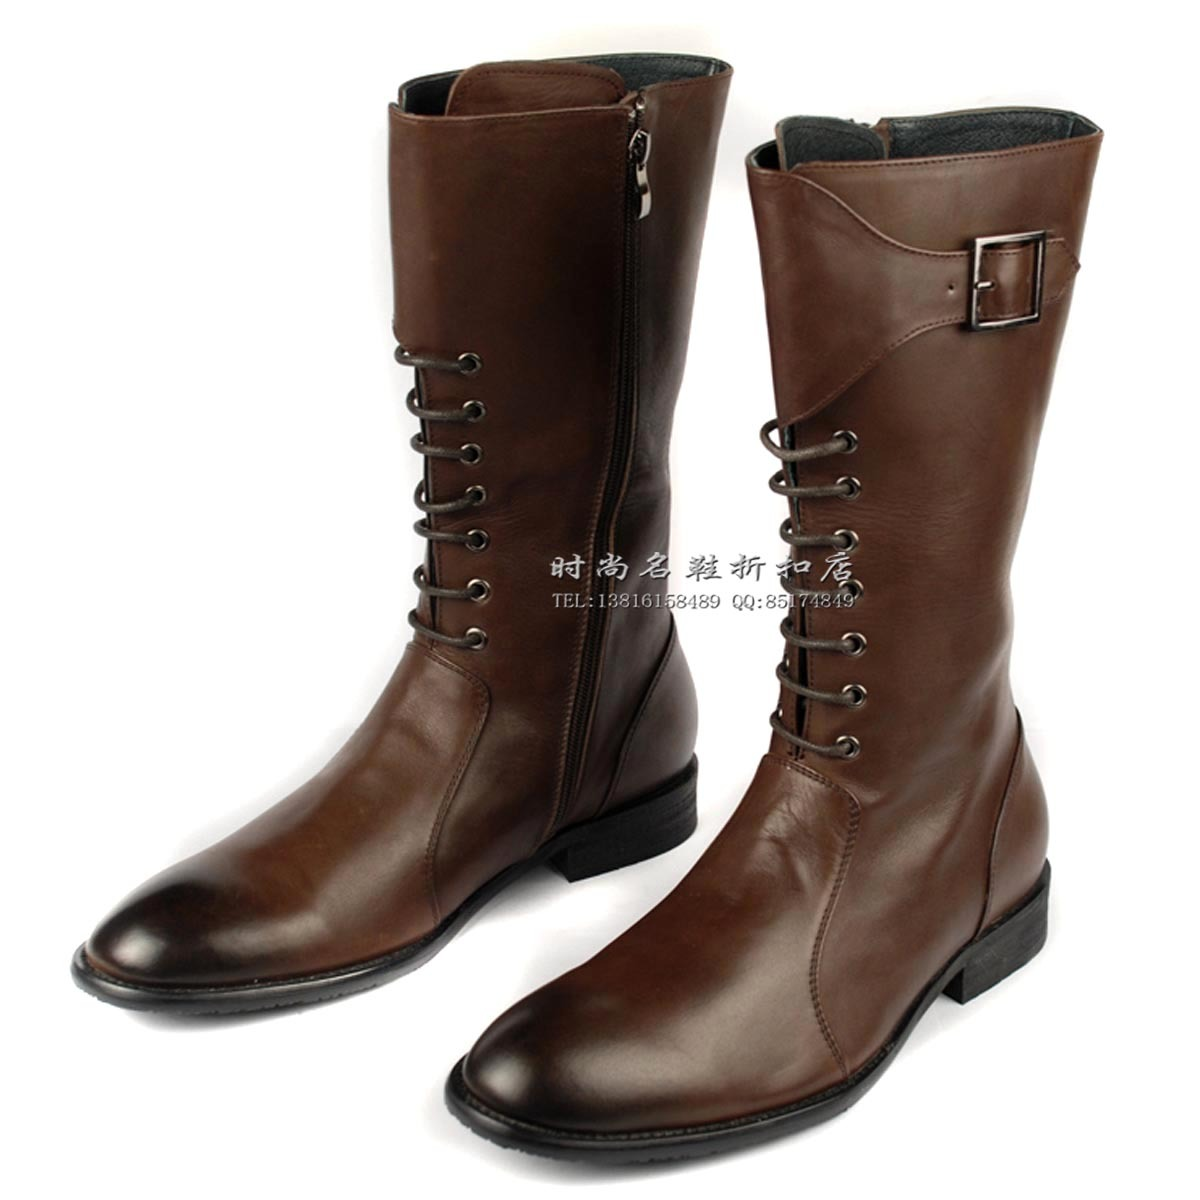 Men's Cheap Fashion Boots Chelsea Boots Buy Mens